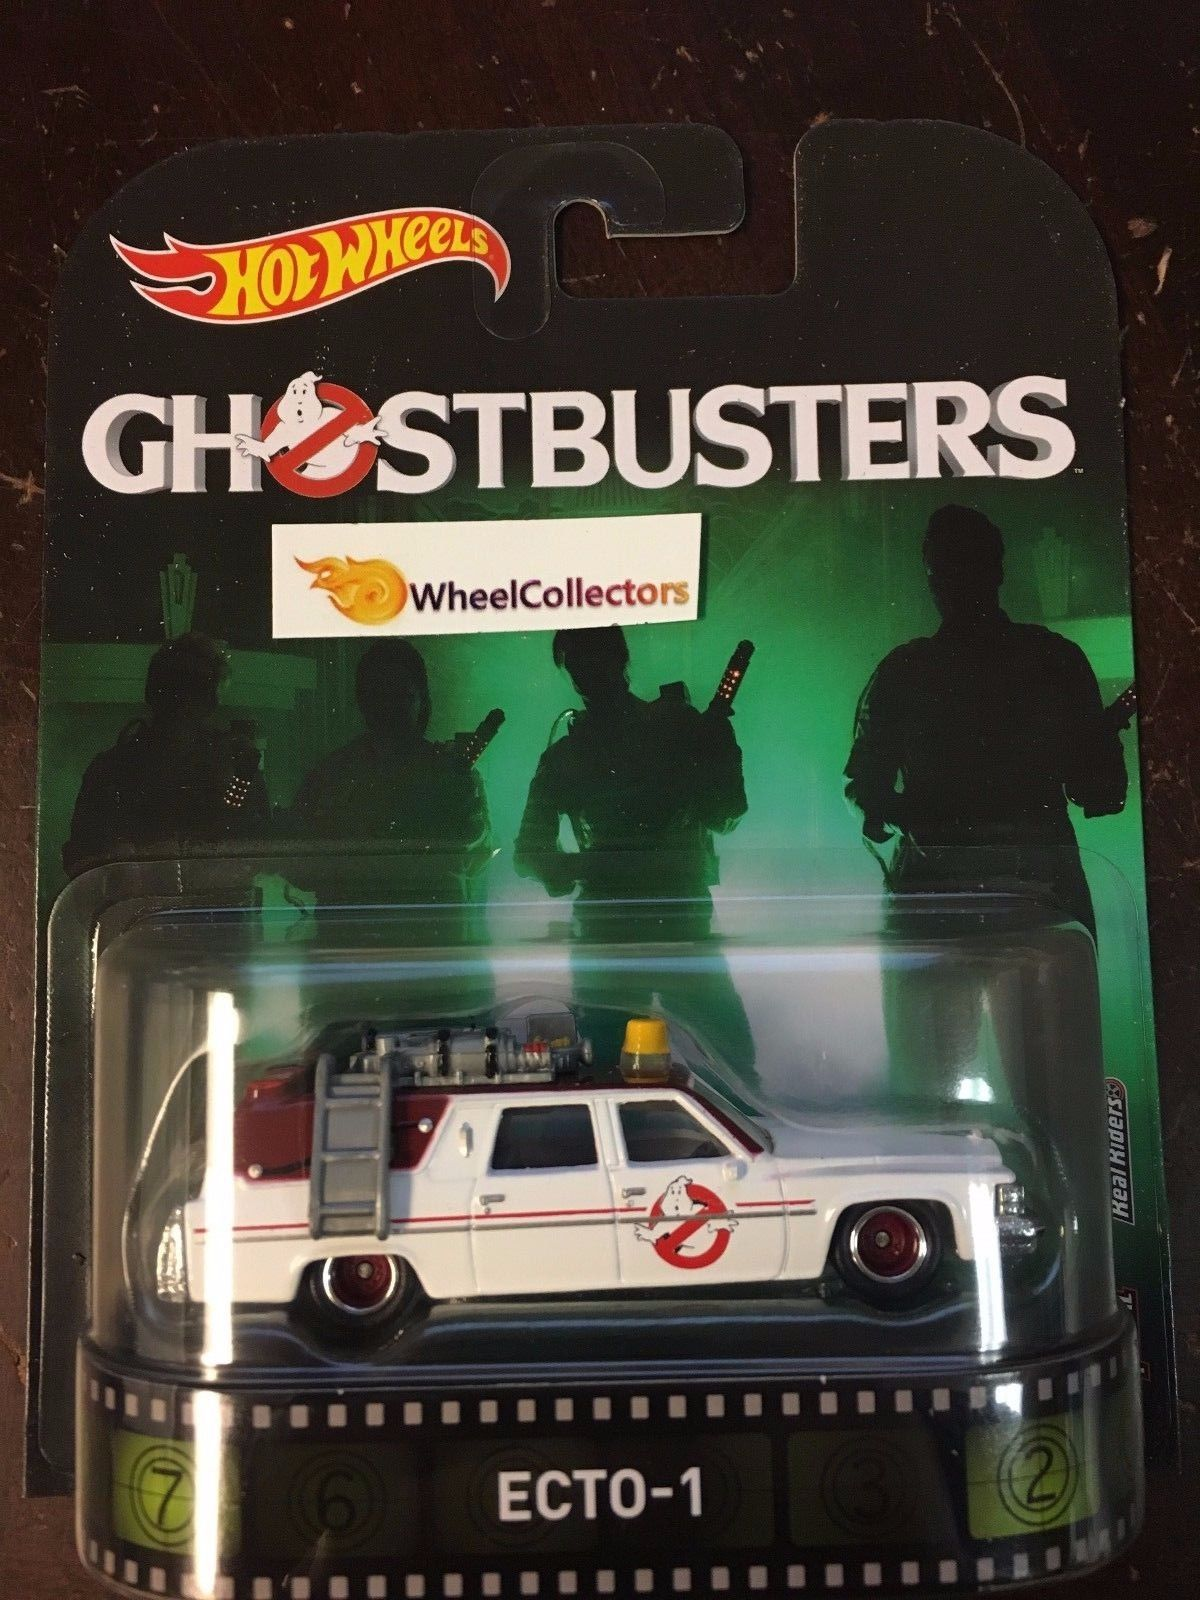 YOU GET A PAIR 2016 HOT WHEELS GHOSTBUSTERS ECTO-1 WALMART EXCLUSIVE